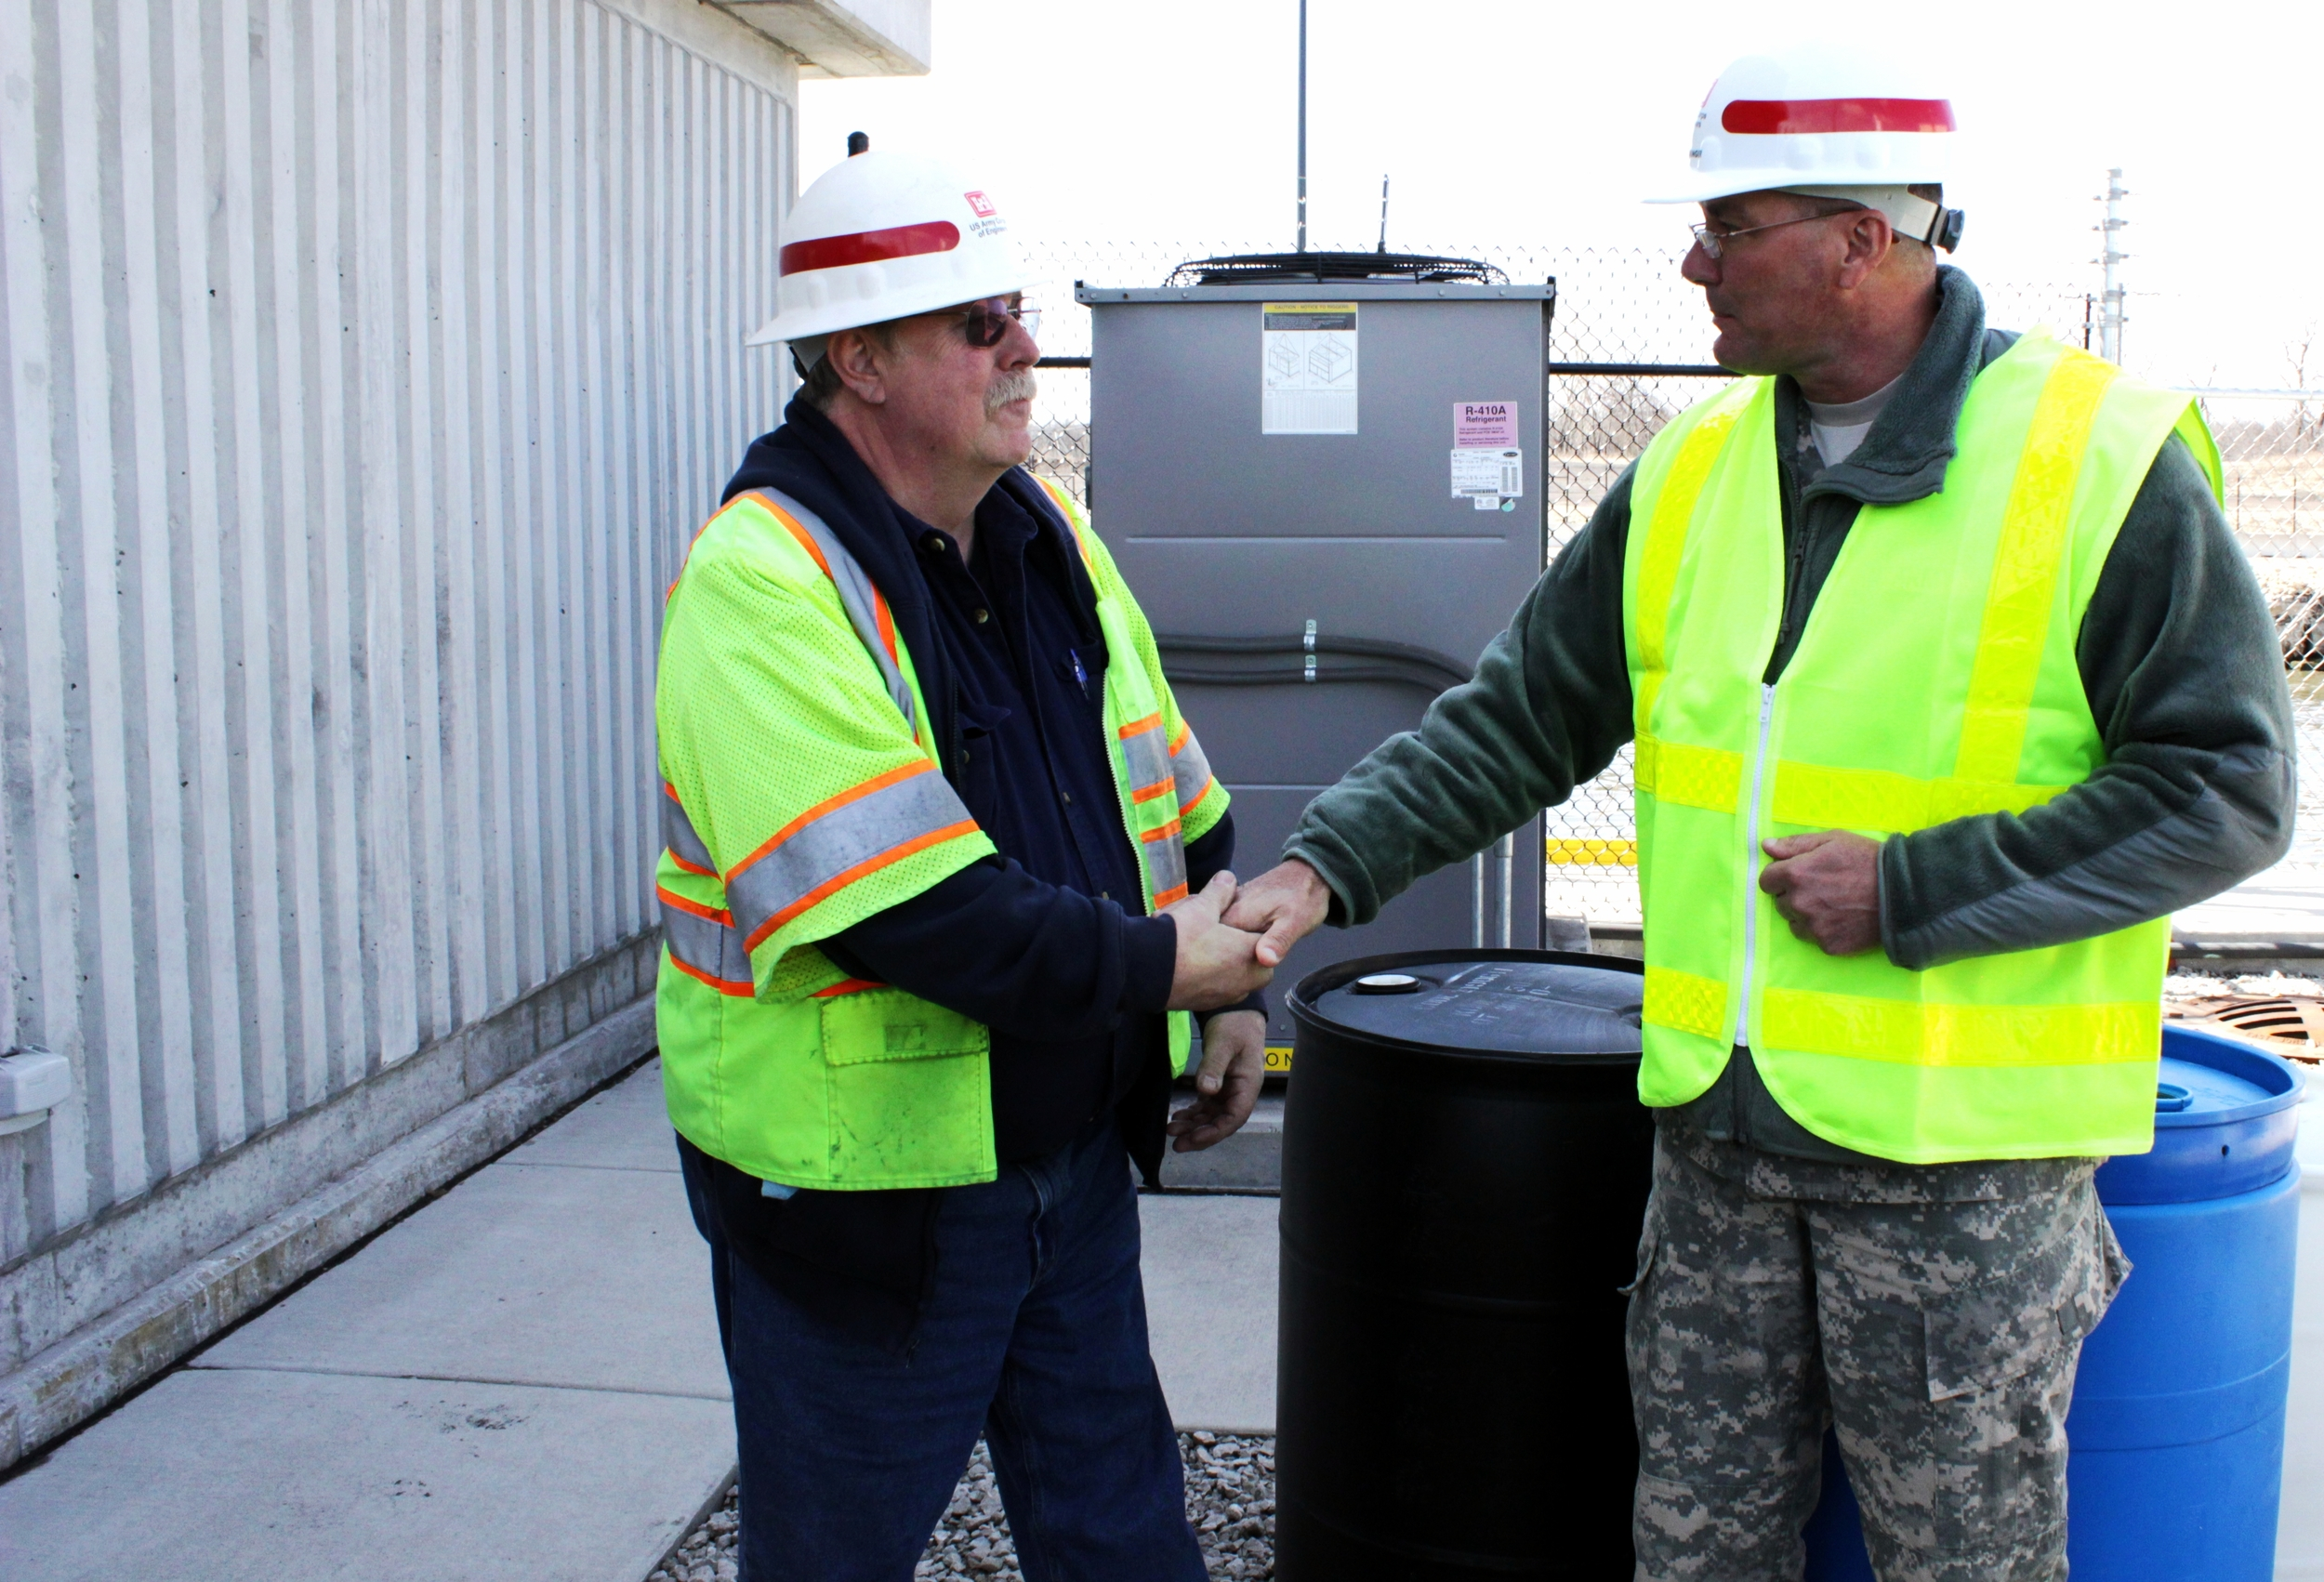 """U.S. Army Photo """" Electric Barrier Facility Manager John McGowan Receives Coin from Command Sgt. Maj. Groninger """" by  Sarah Gross /Released is licensed under  CC BY 2.0 ."""